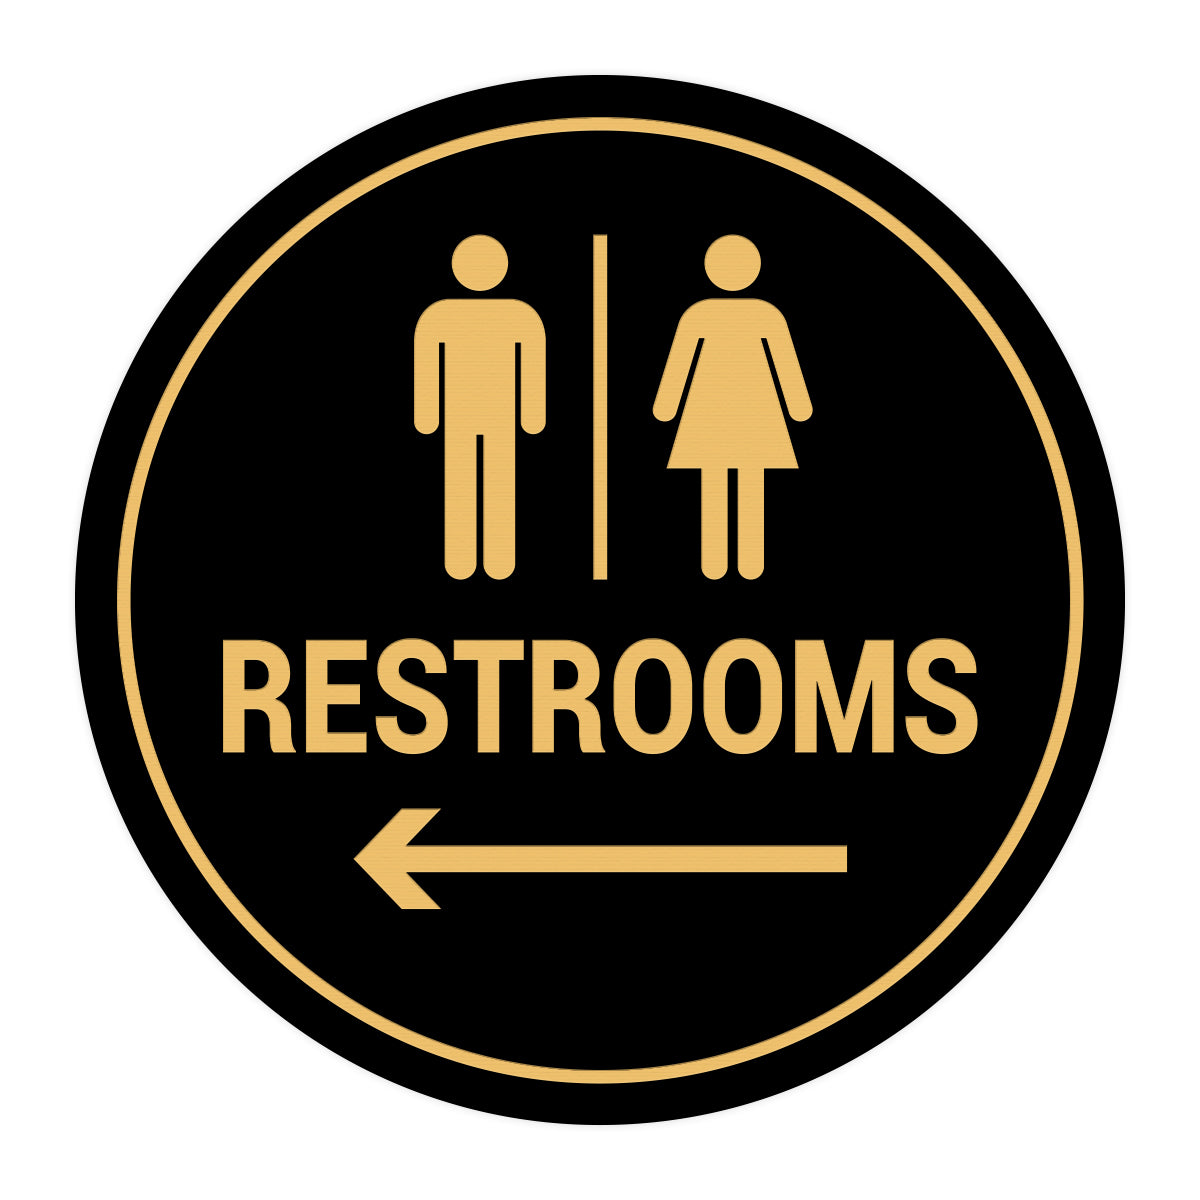 Signs ByLITA Circle Restrooms Left Arrow Sign